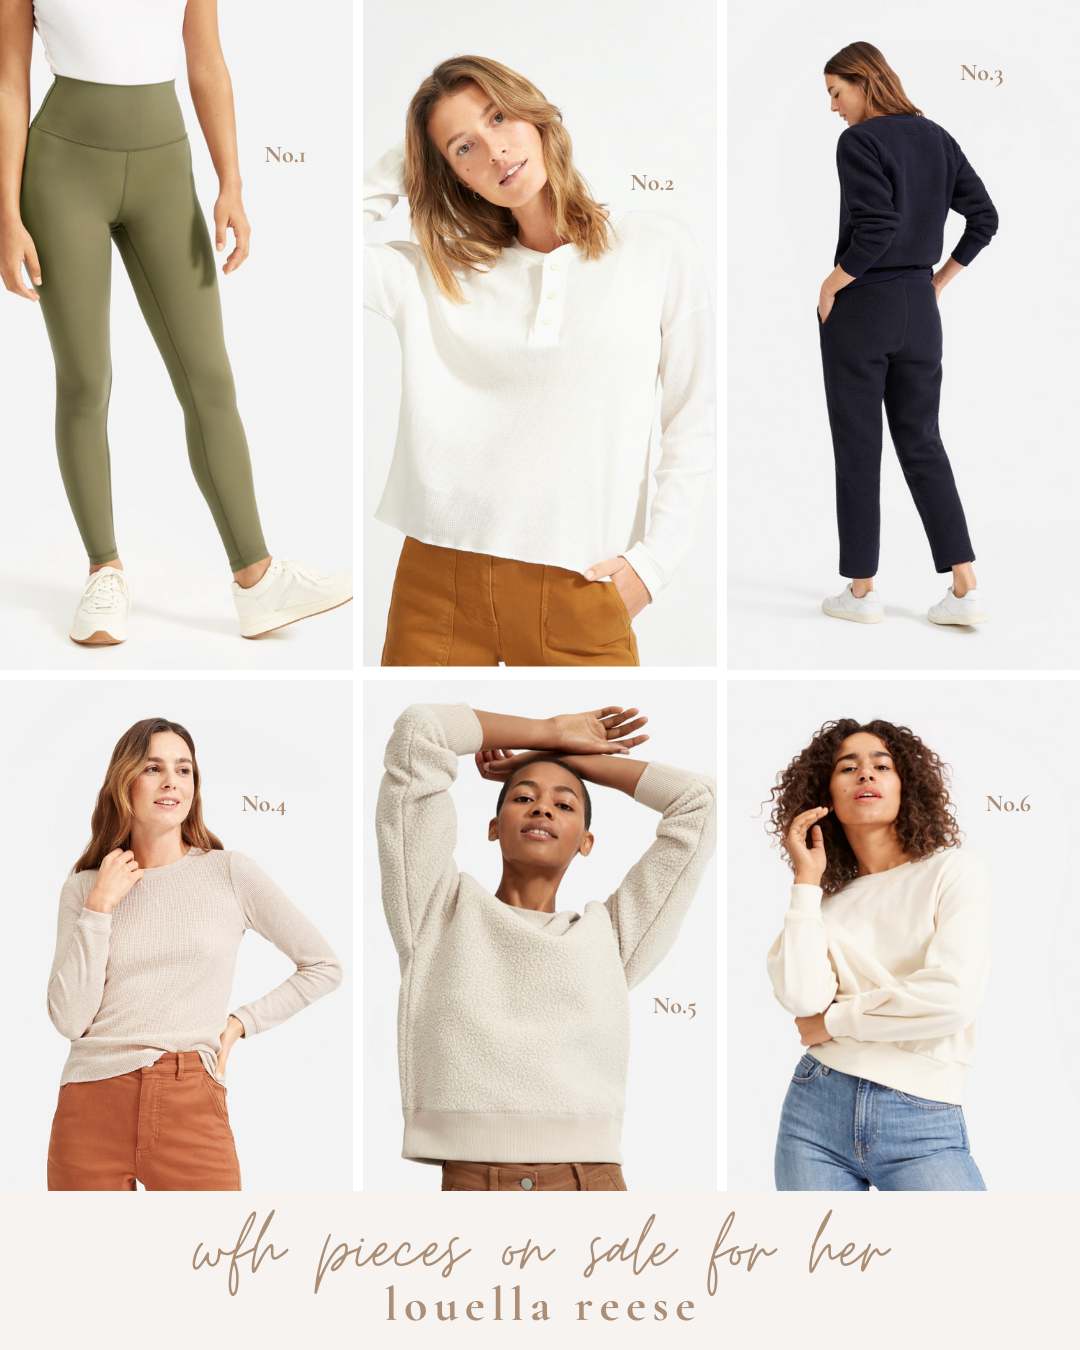 WFH Style for Her   Work from Home clothing on Sale   Louella Reese